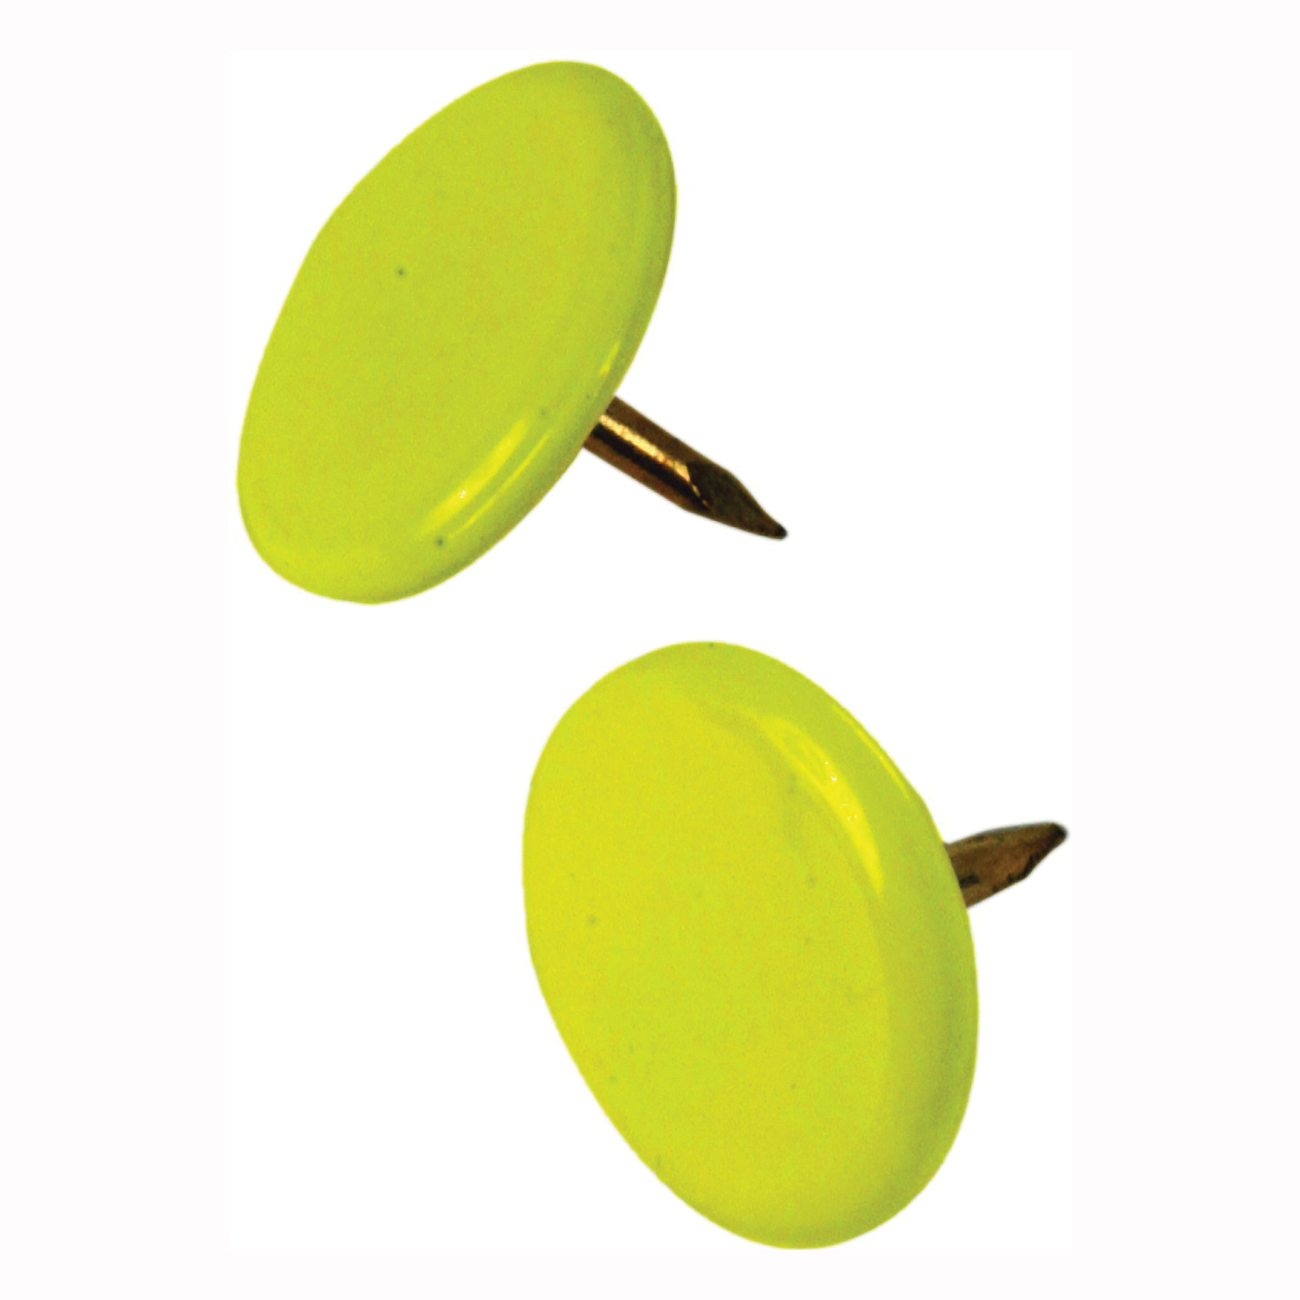 Picture of HILLMAN 122671 Thumb Tack, 15/64 in Shank, Steel, Painted, Yellow, Cap Head, Sharp Point, Snap-Pak